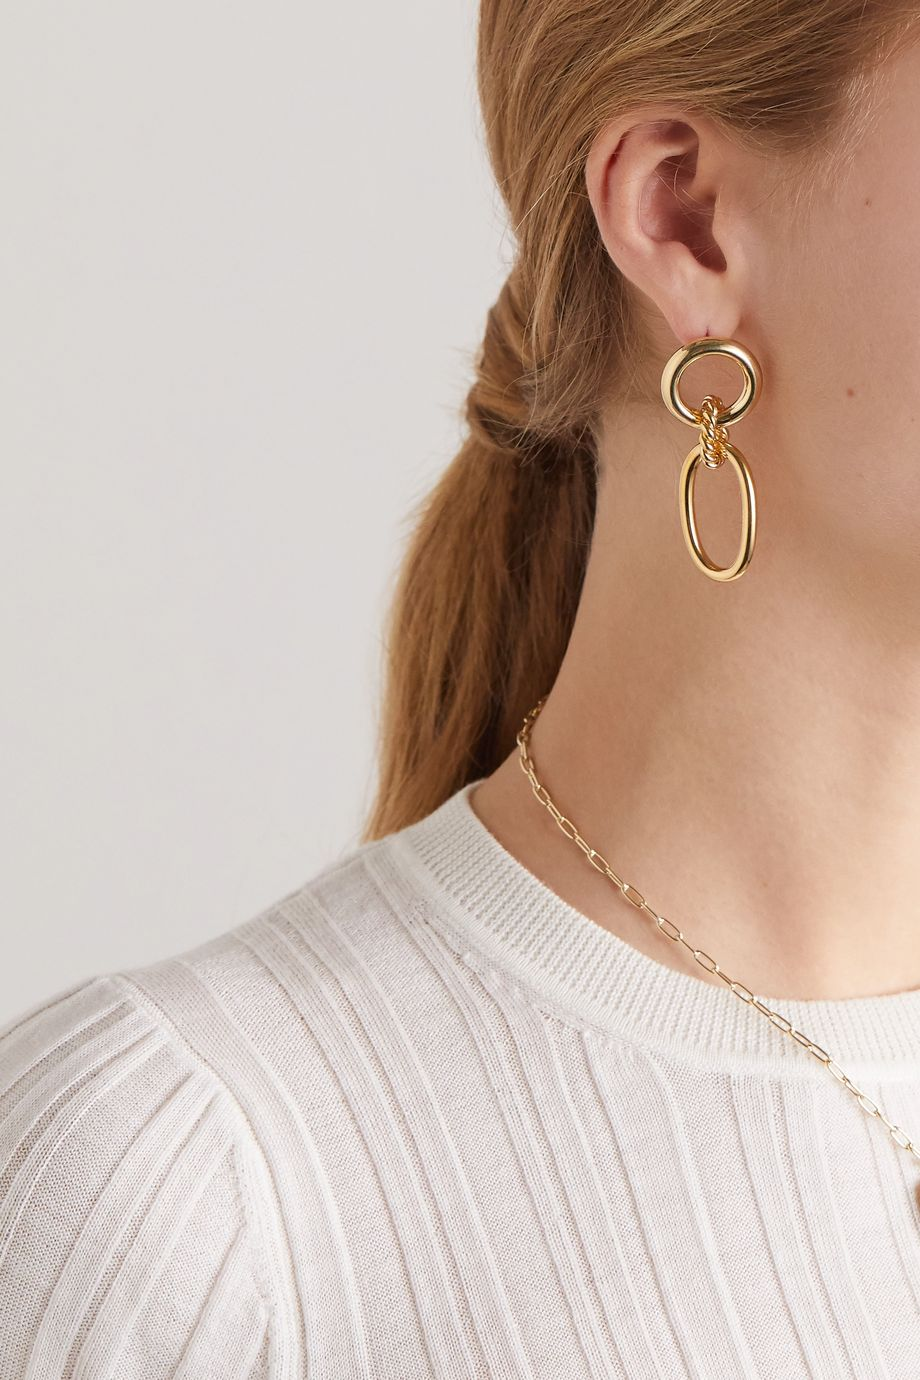 Laura Lombardi + NET SUSTAIN Lou braided gold-plated earrings